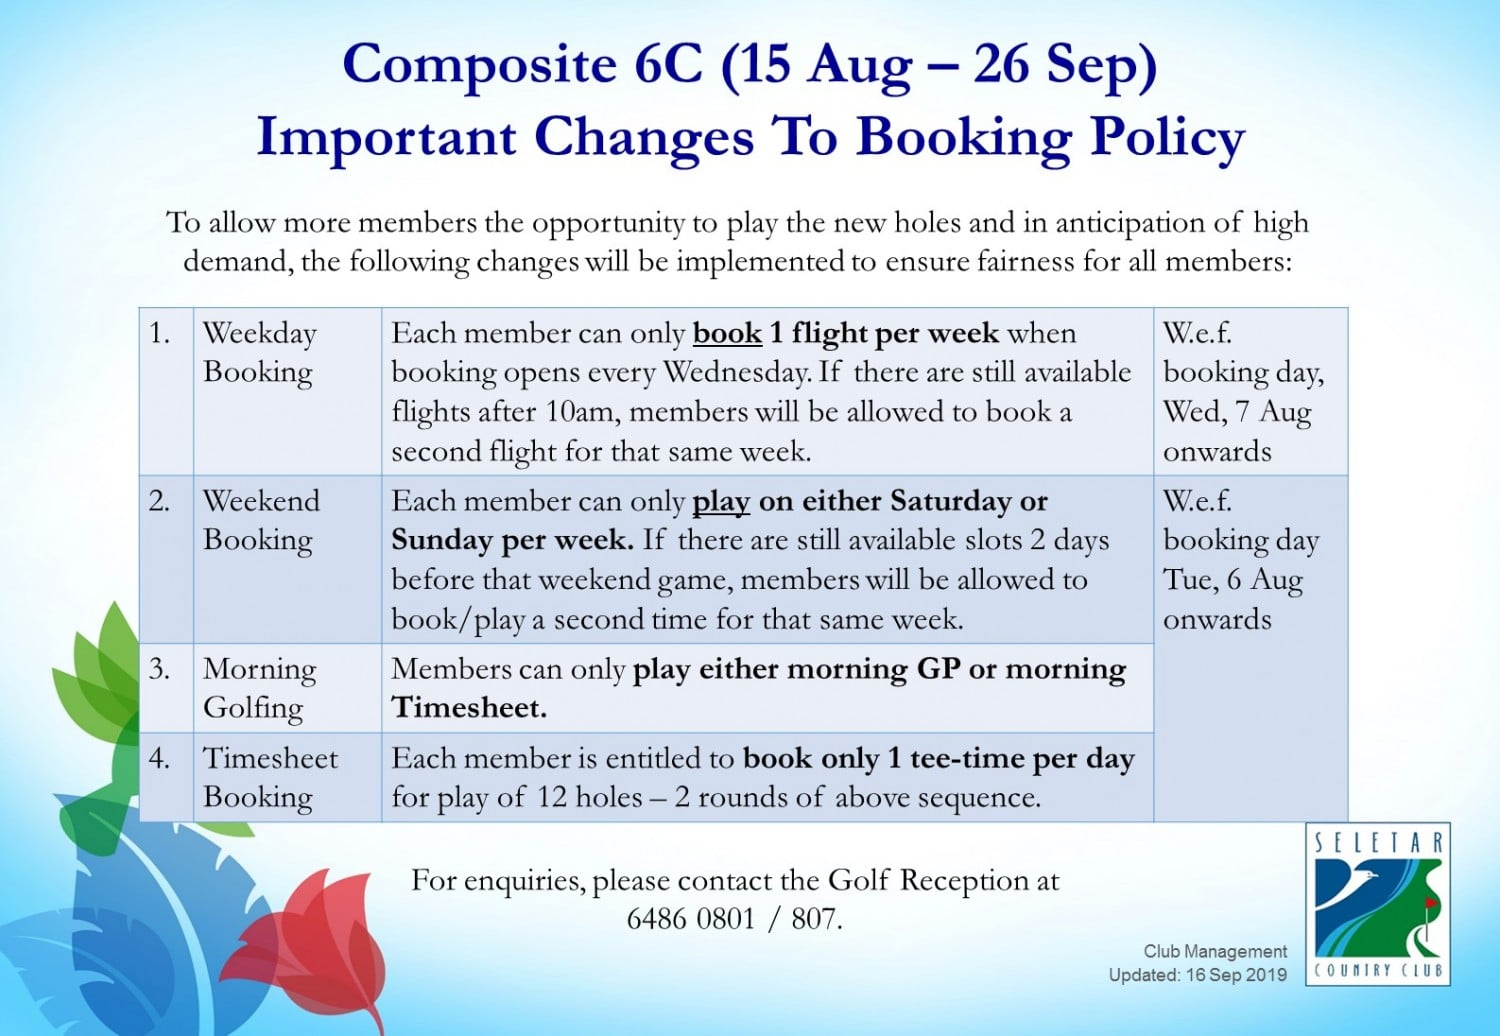 Composite 6C Changes to Booking Policy_updated